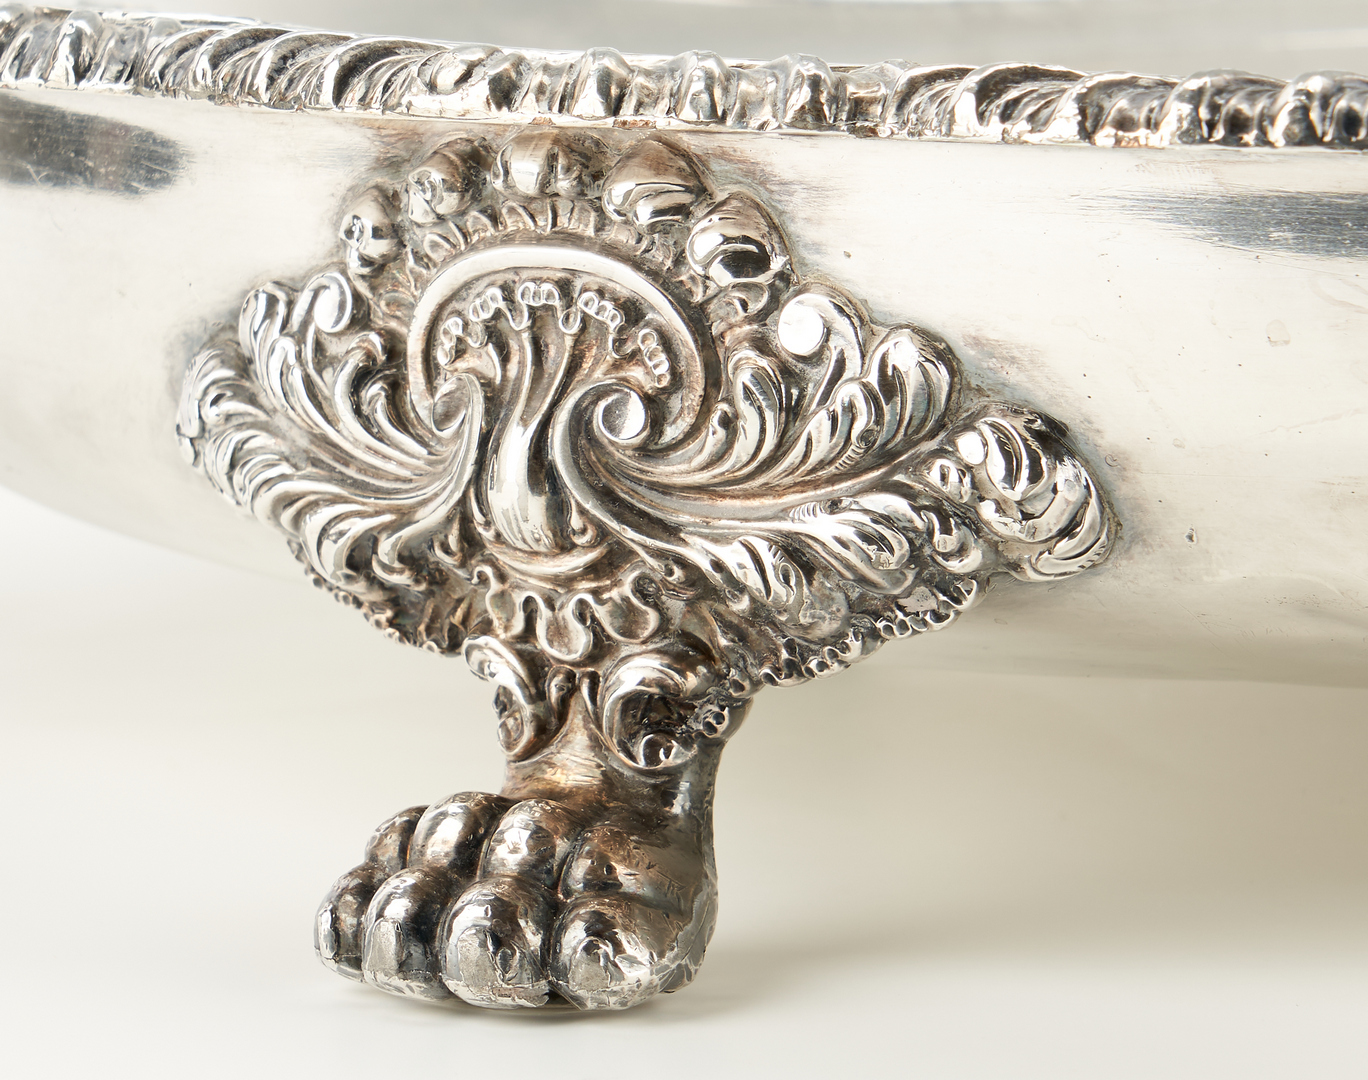 Lot 1246: Old Sheffield Plate Warming Stand and Mazarin